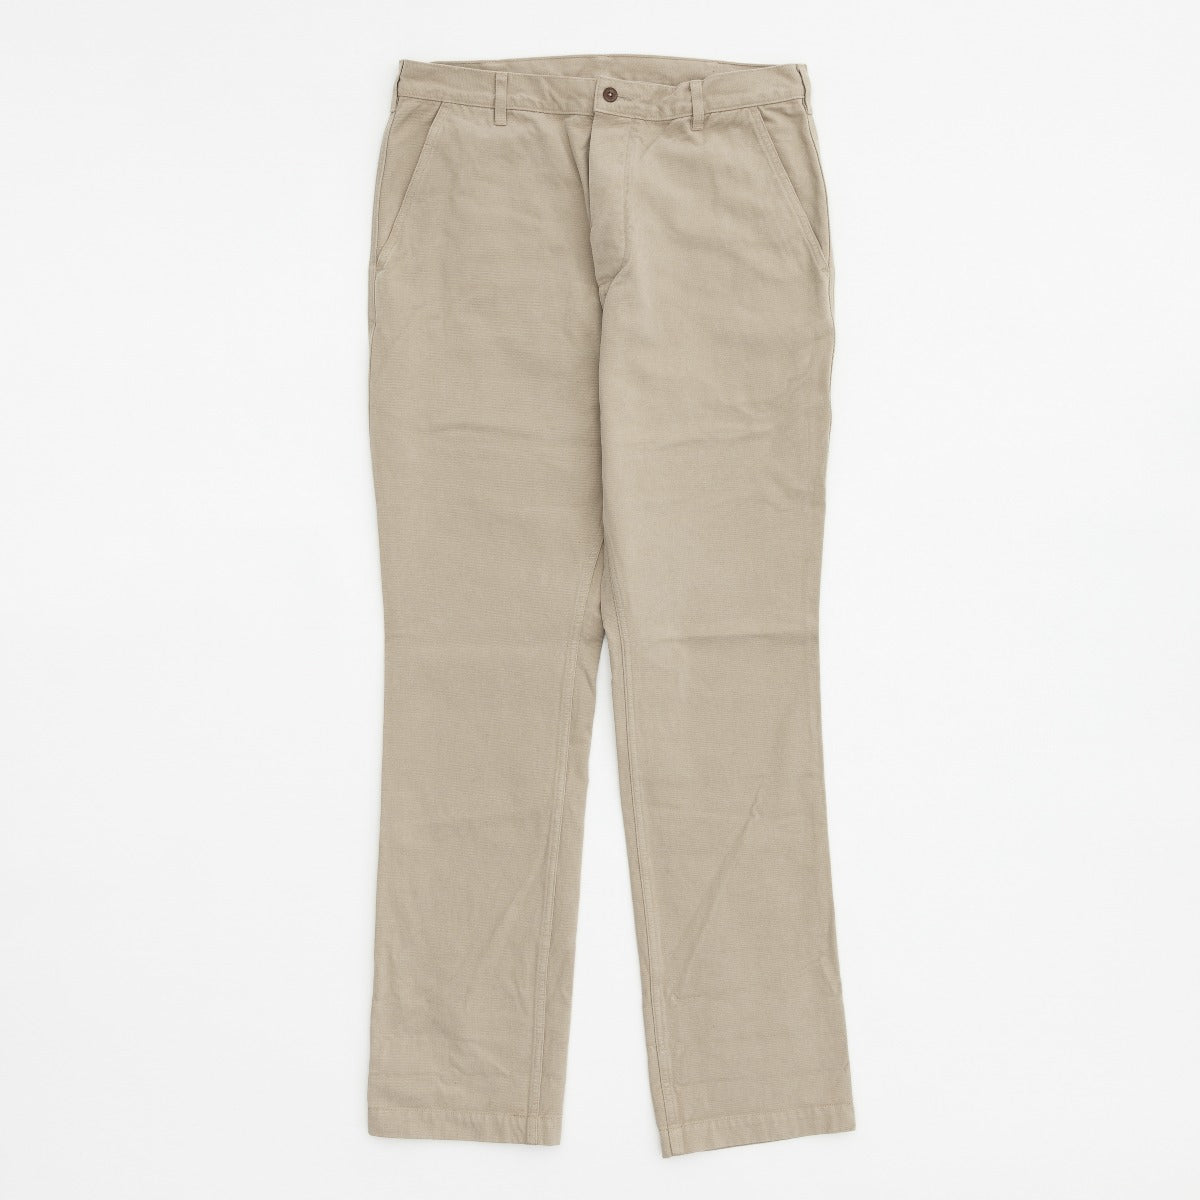 Margaret Howell Light Cotton Worker Trouser